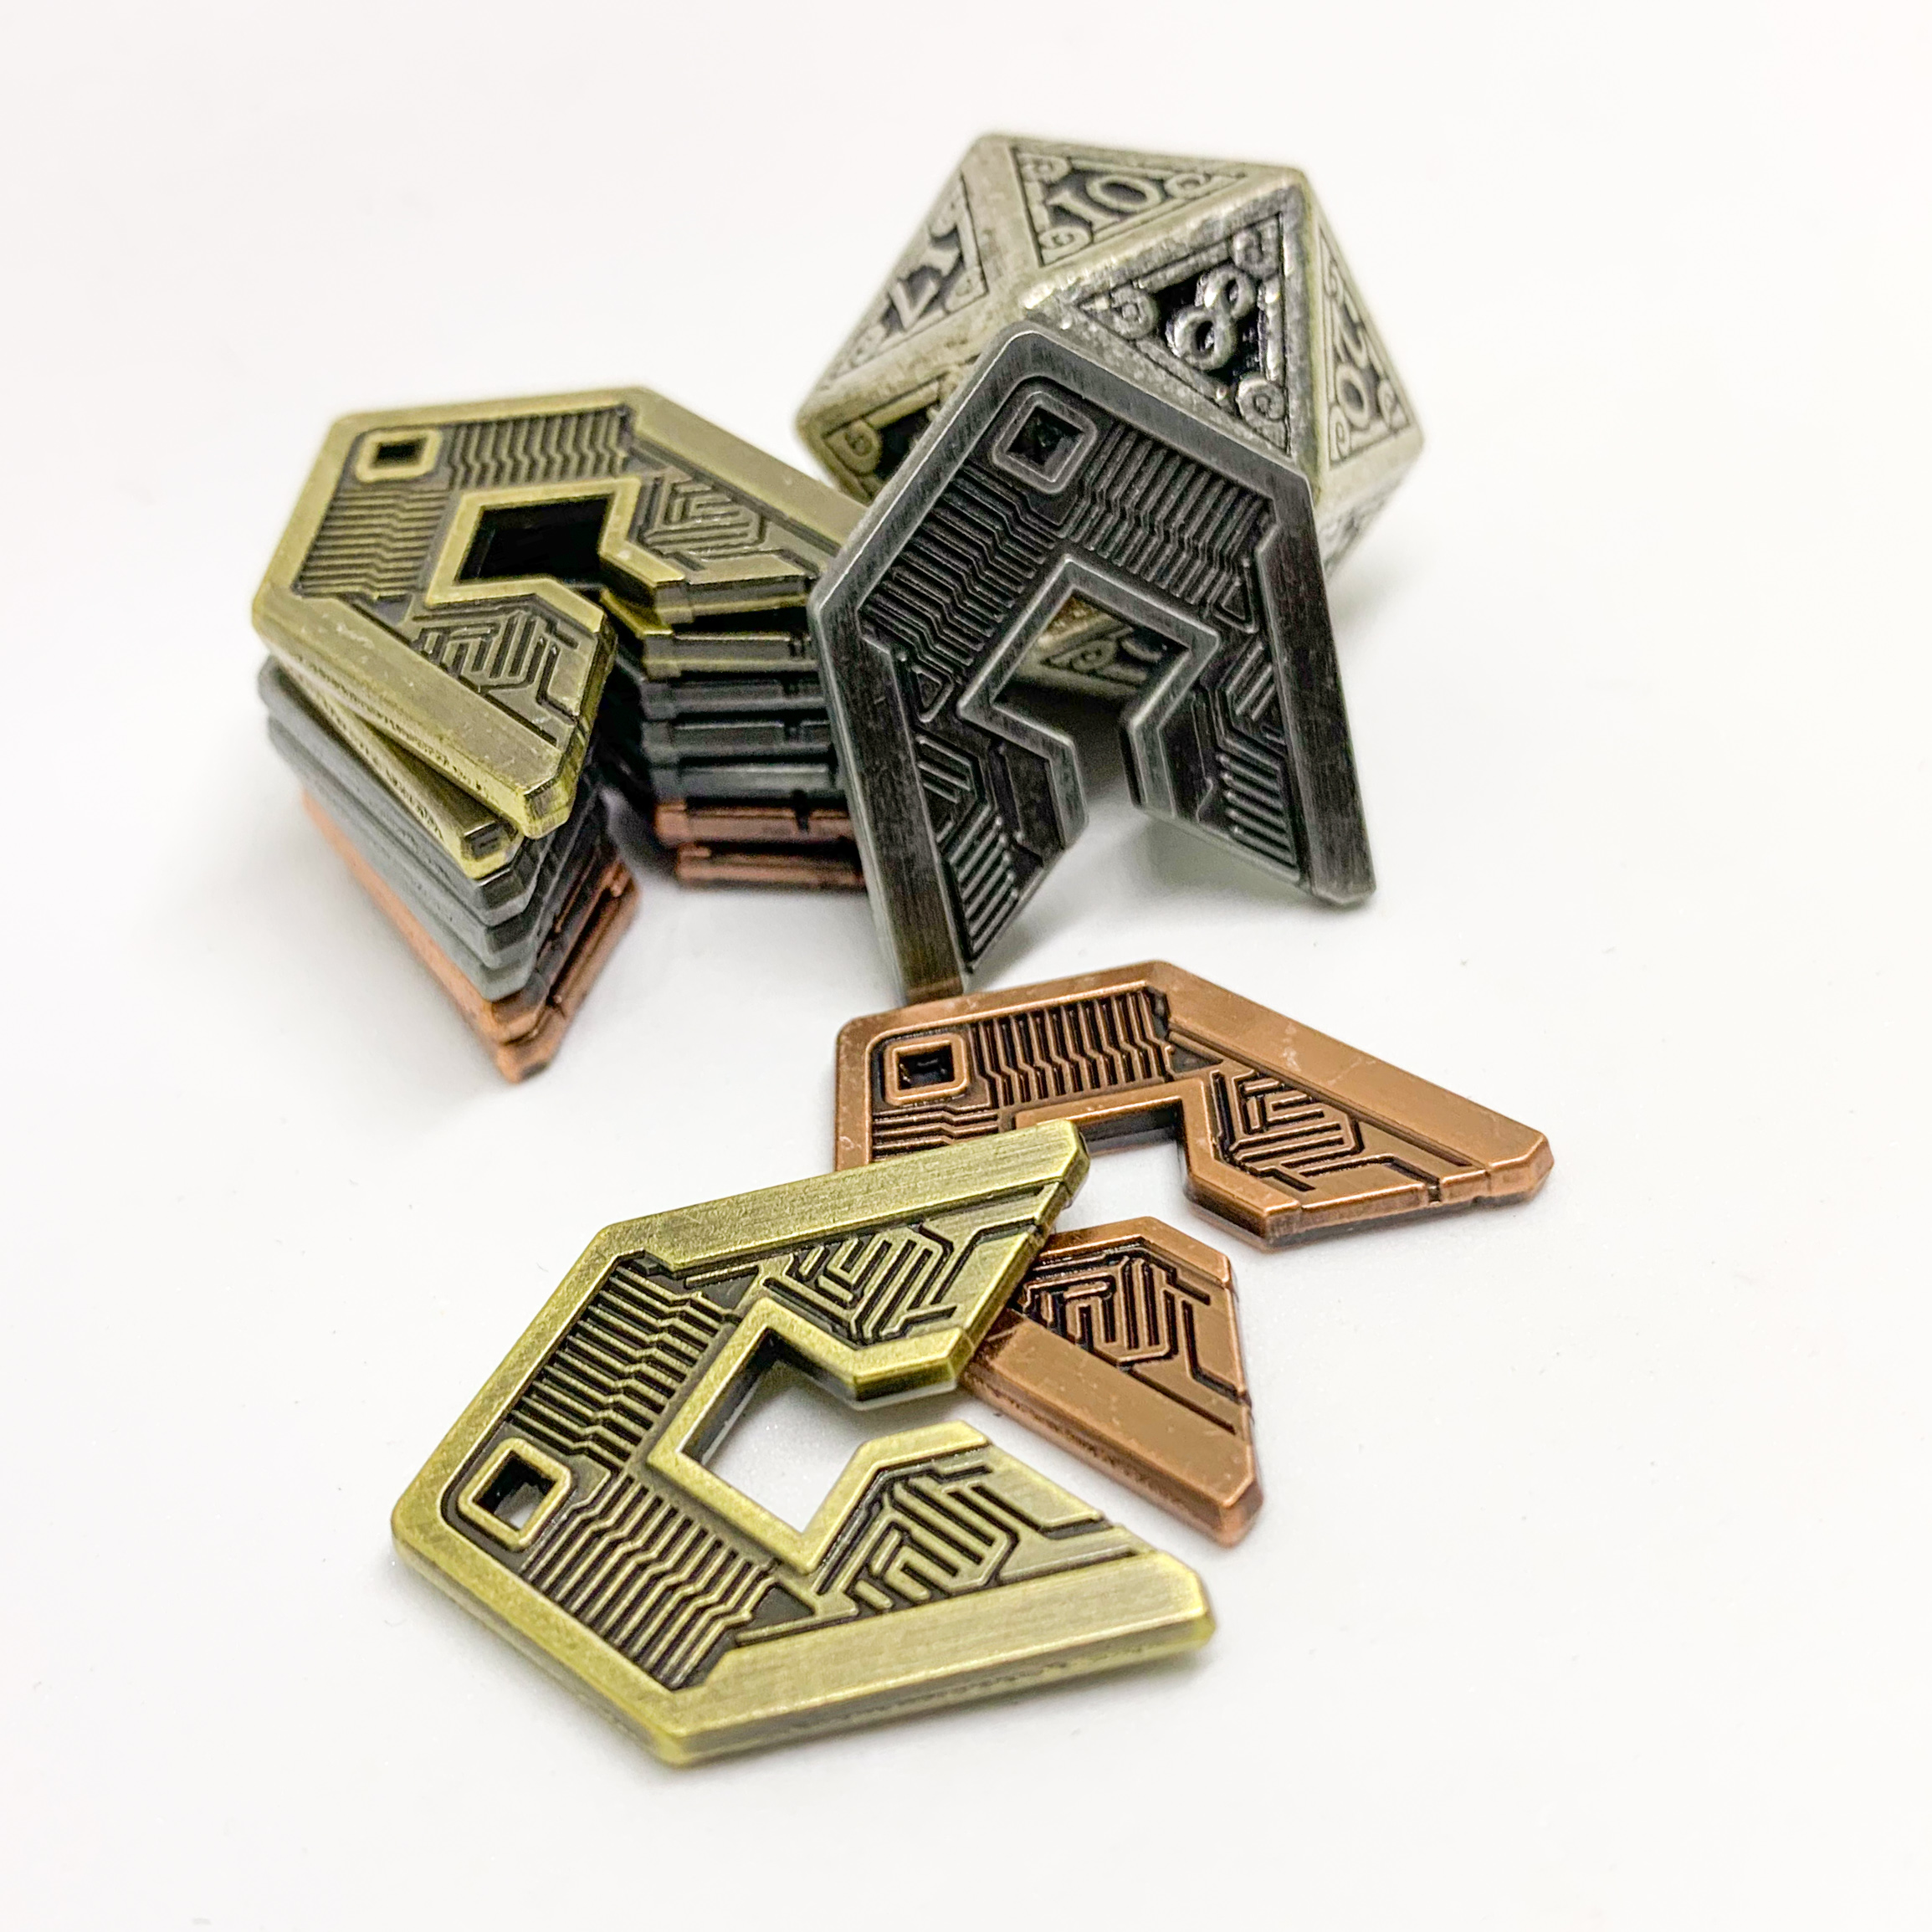 Campaign Coins - Numenera Shims type 5